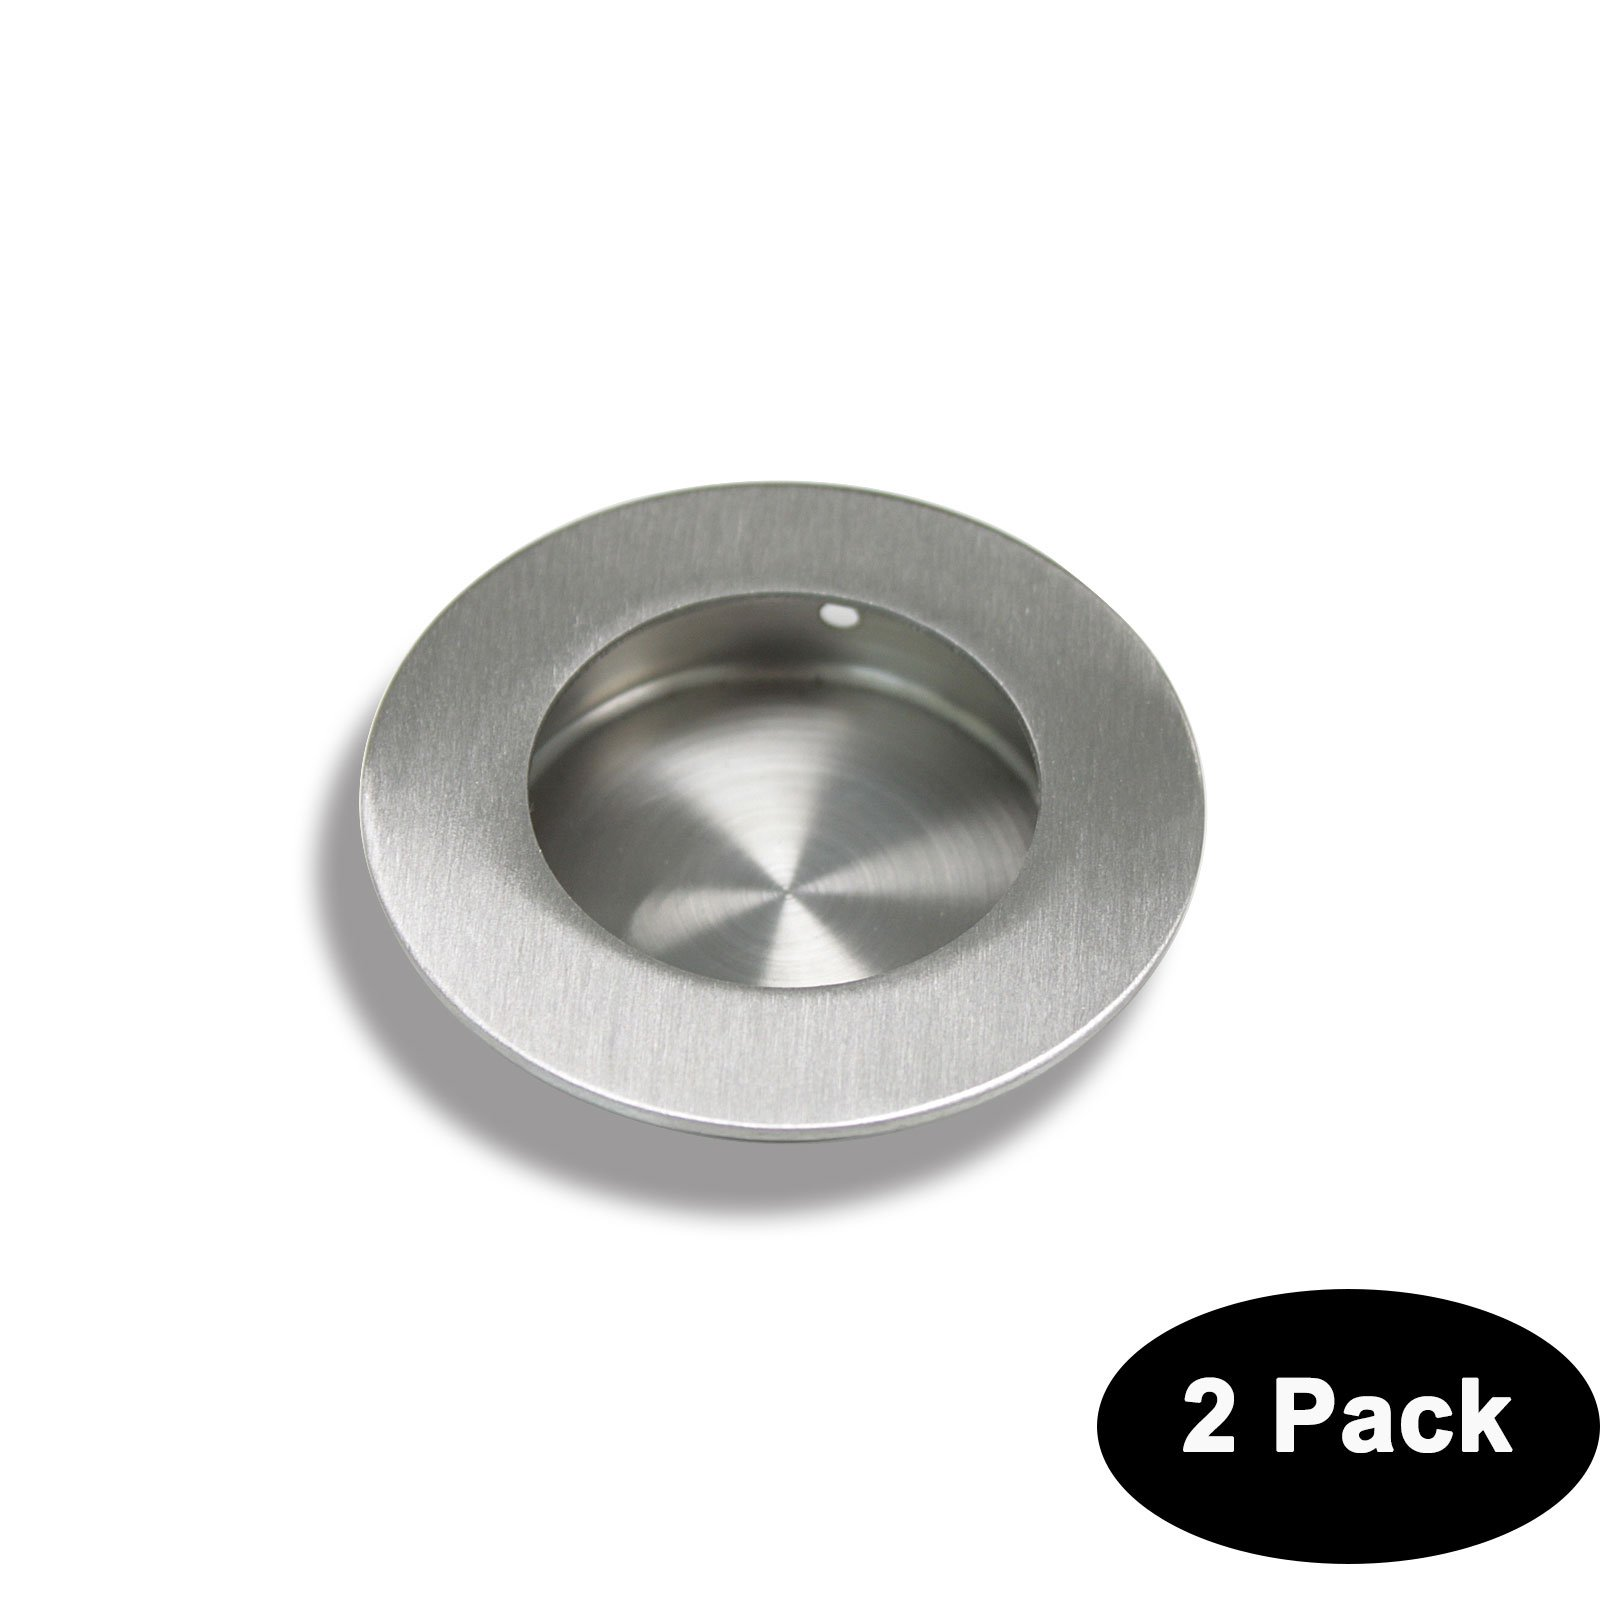 Circular Recessed Sliding Door Handles Round Flush Finger Pulls Diameter:2-1/2 in Stainless Steel 2 Pack by Home Building Store